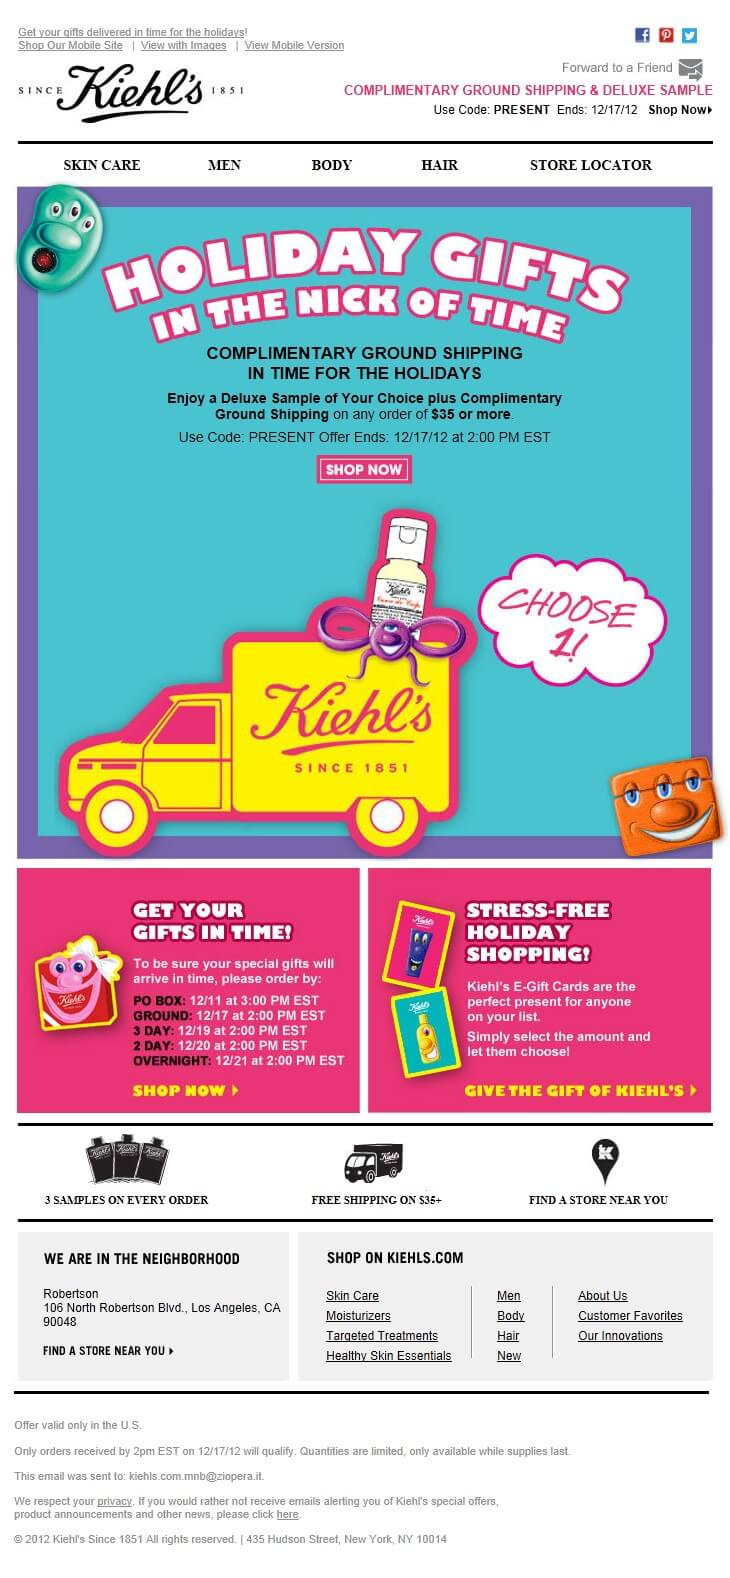 fashion email examples- Kiehl's